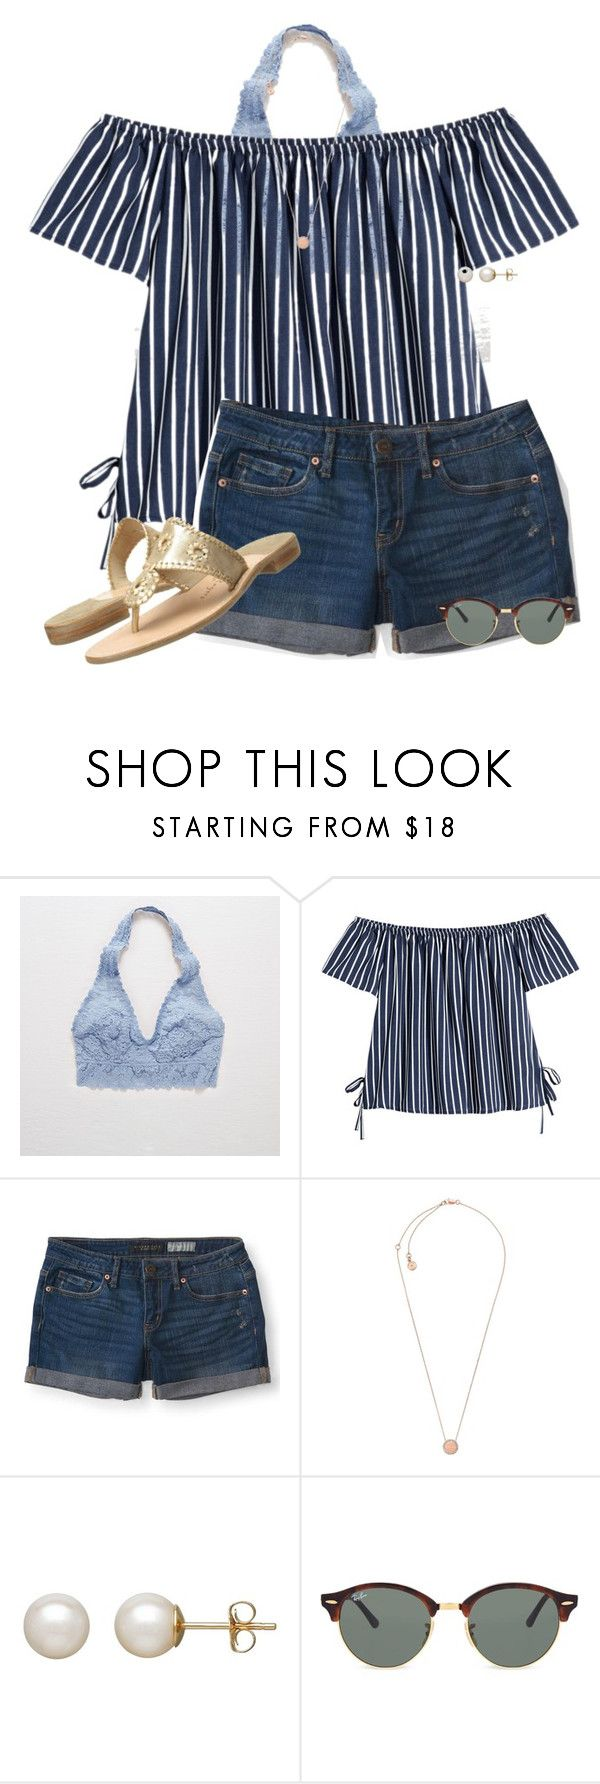 """Flying home tomorrow✈️"" by auburnlady ❤ liked on Polyvore featuring Aerie, Aéropostale, Michael Kors, Honora, Ray-Ban and Jack Rogers"